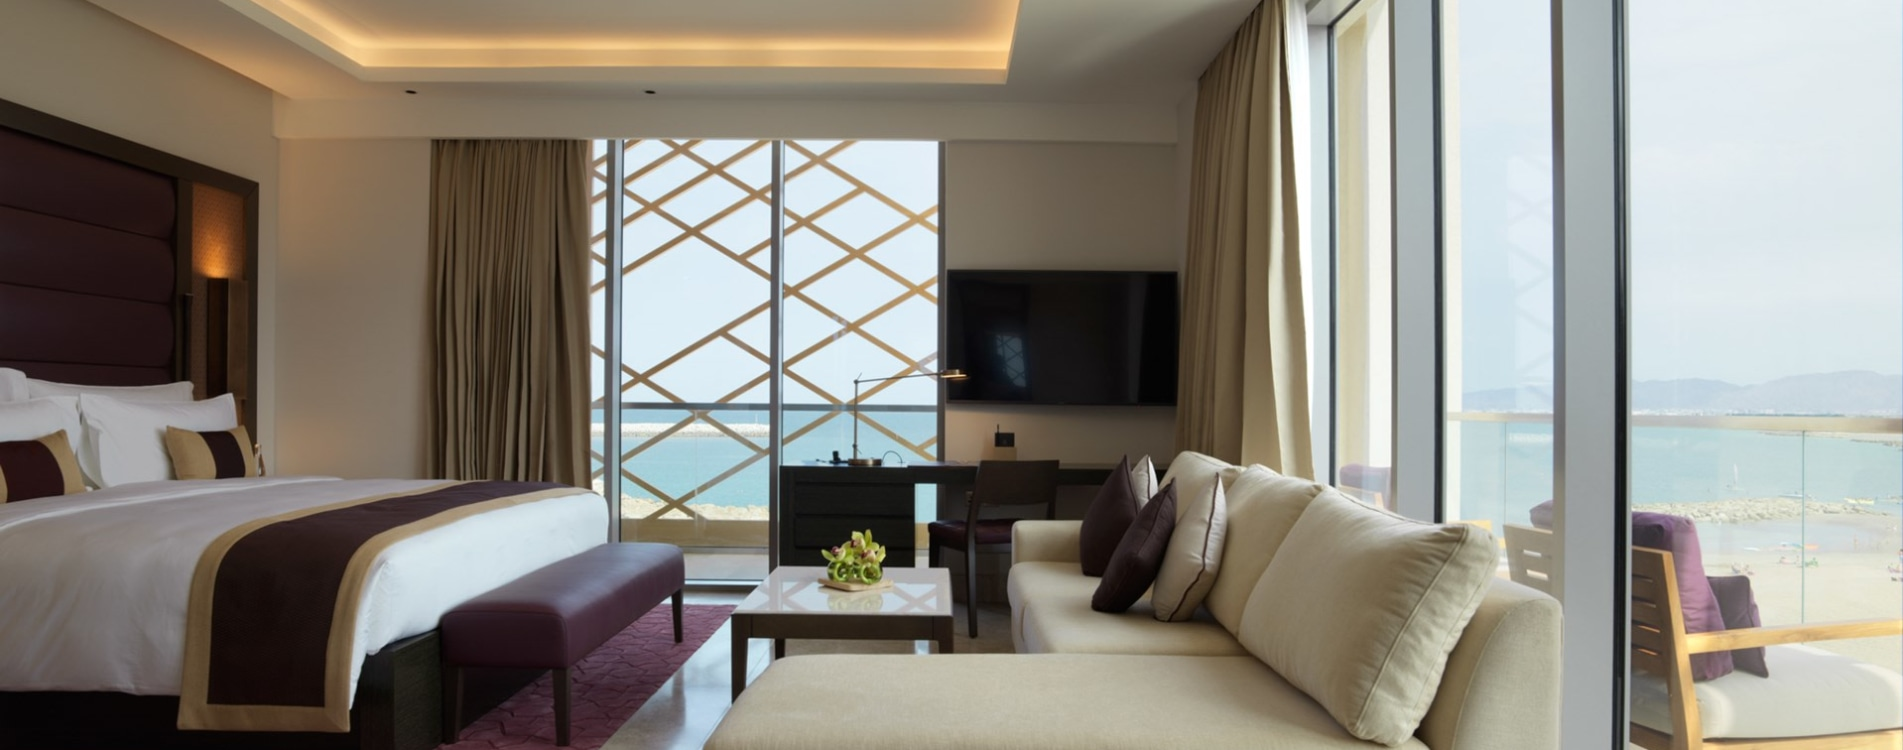 Kempinski-Hotel-Muscat-Grand-Deluxe-Sea-View-Room-Interior-Oman